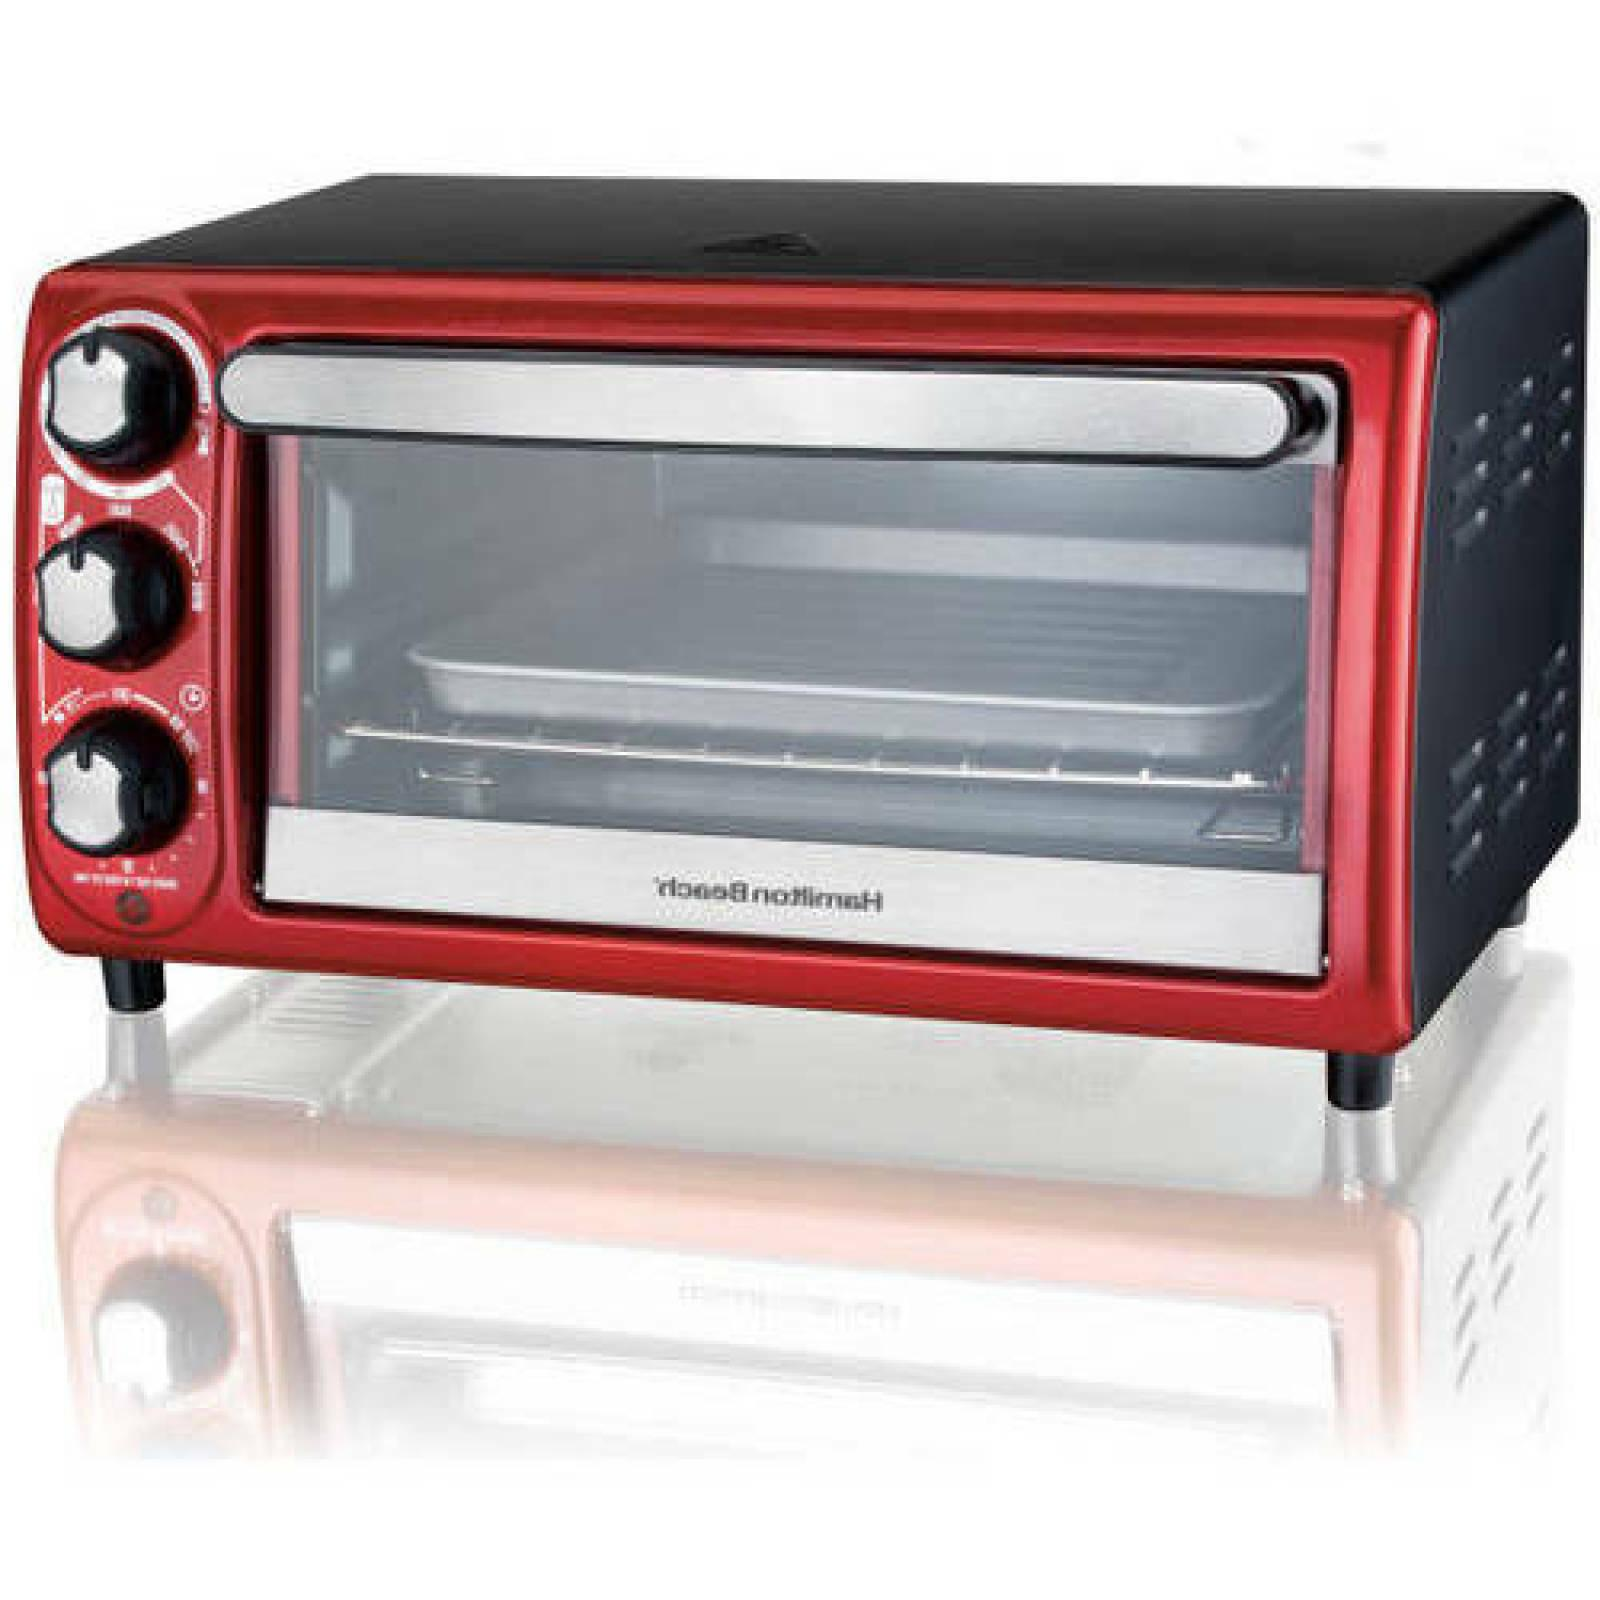 4 Slice Toaster Oven Countertop Kitchen, Hamilton Beach